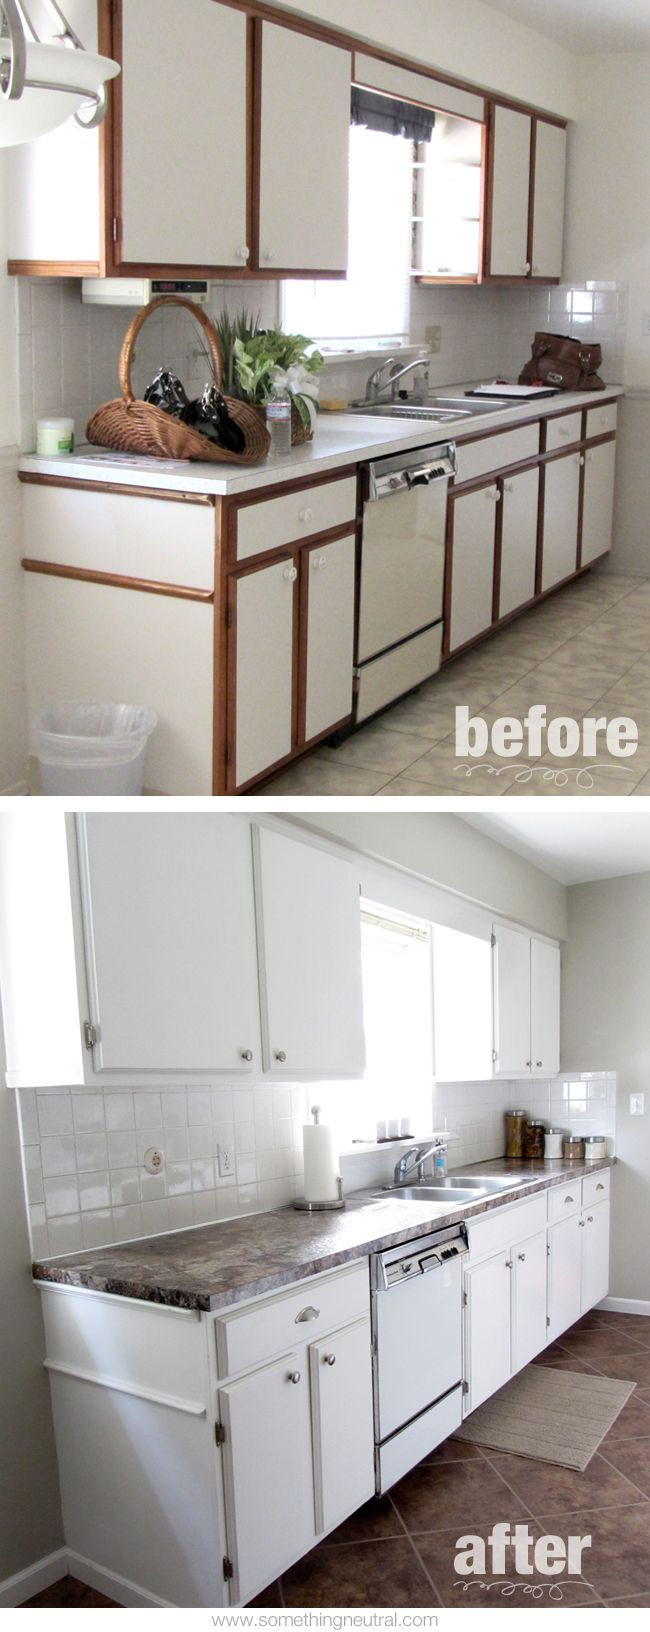 Uncategorized Can I Paint Over Laminate Kitchen Cabinets best 20 painting laminate countertops ideas on pinterest paint budget kitchen makeover before after